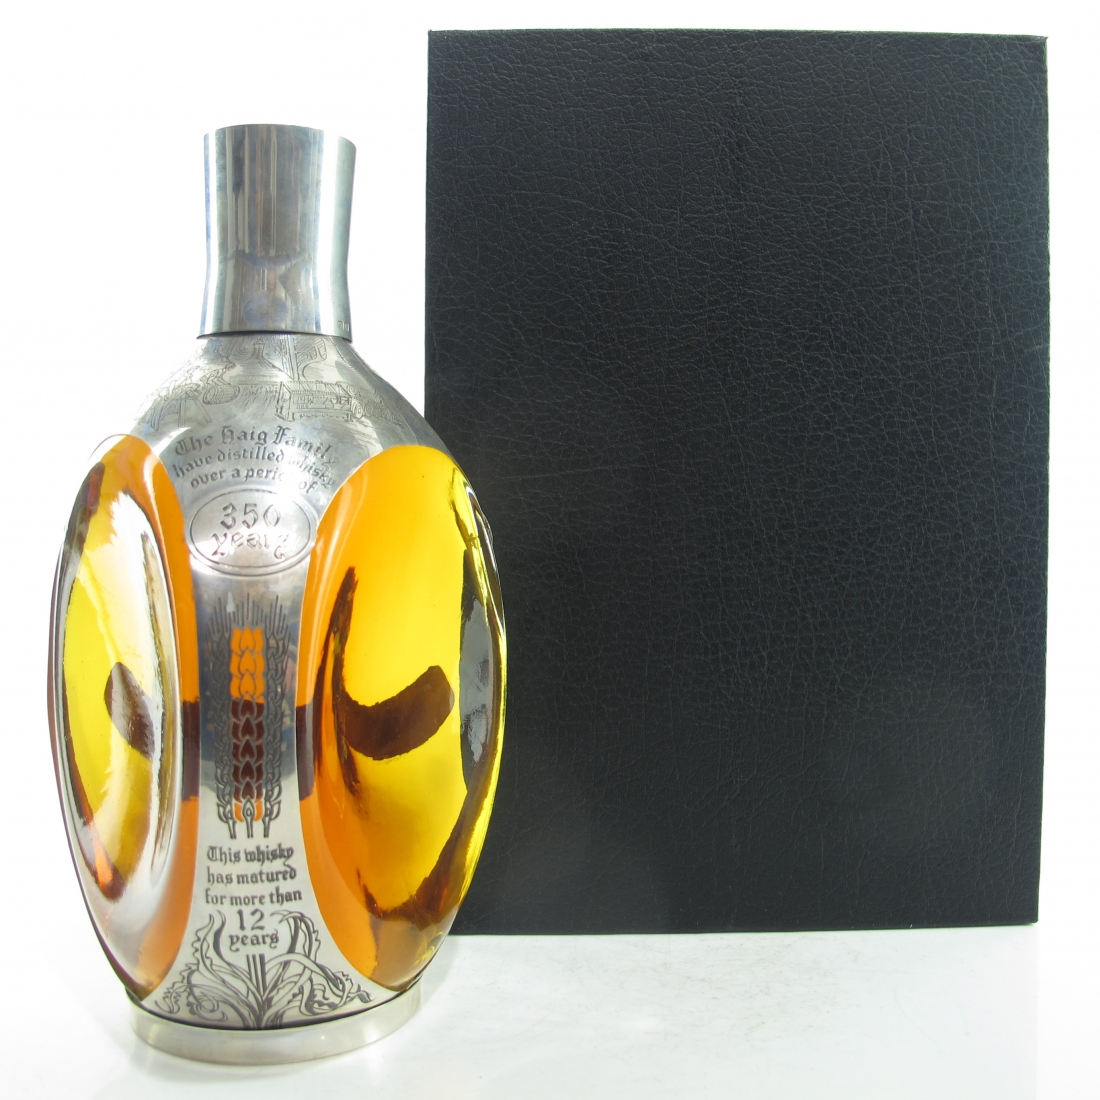 Haig's Dimple 12 Year Old Sterling Silver Decanter / 350th Anniversary